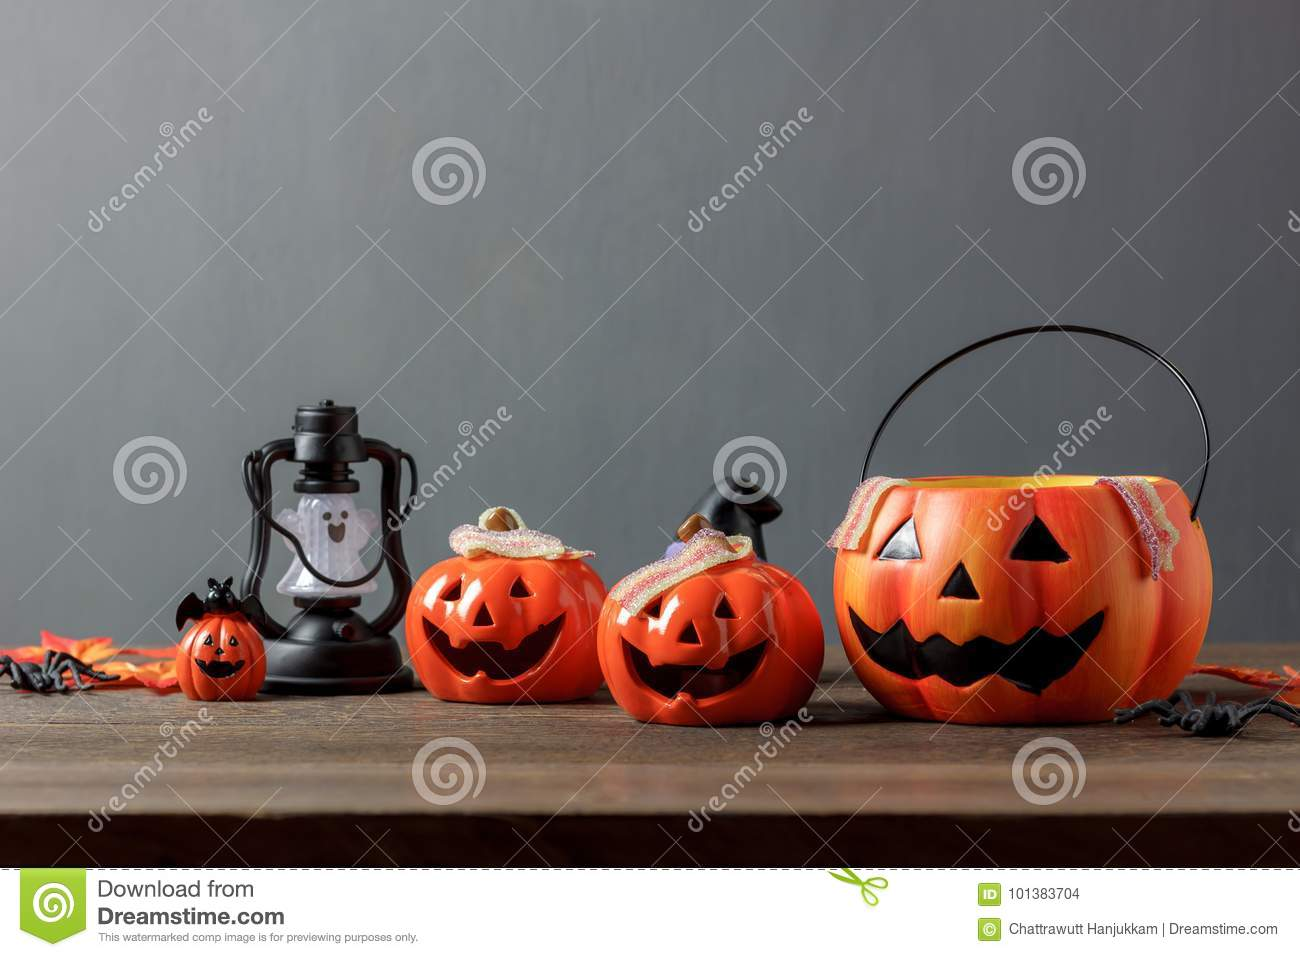 Essential accessory of Happy Halloween decorations festival concept background.